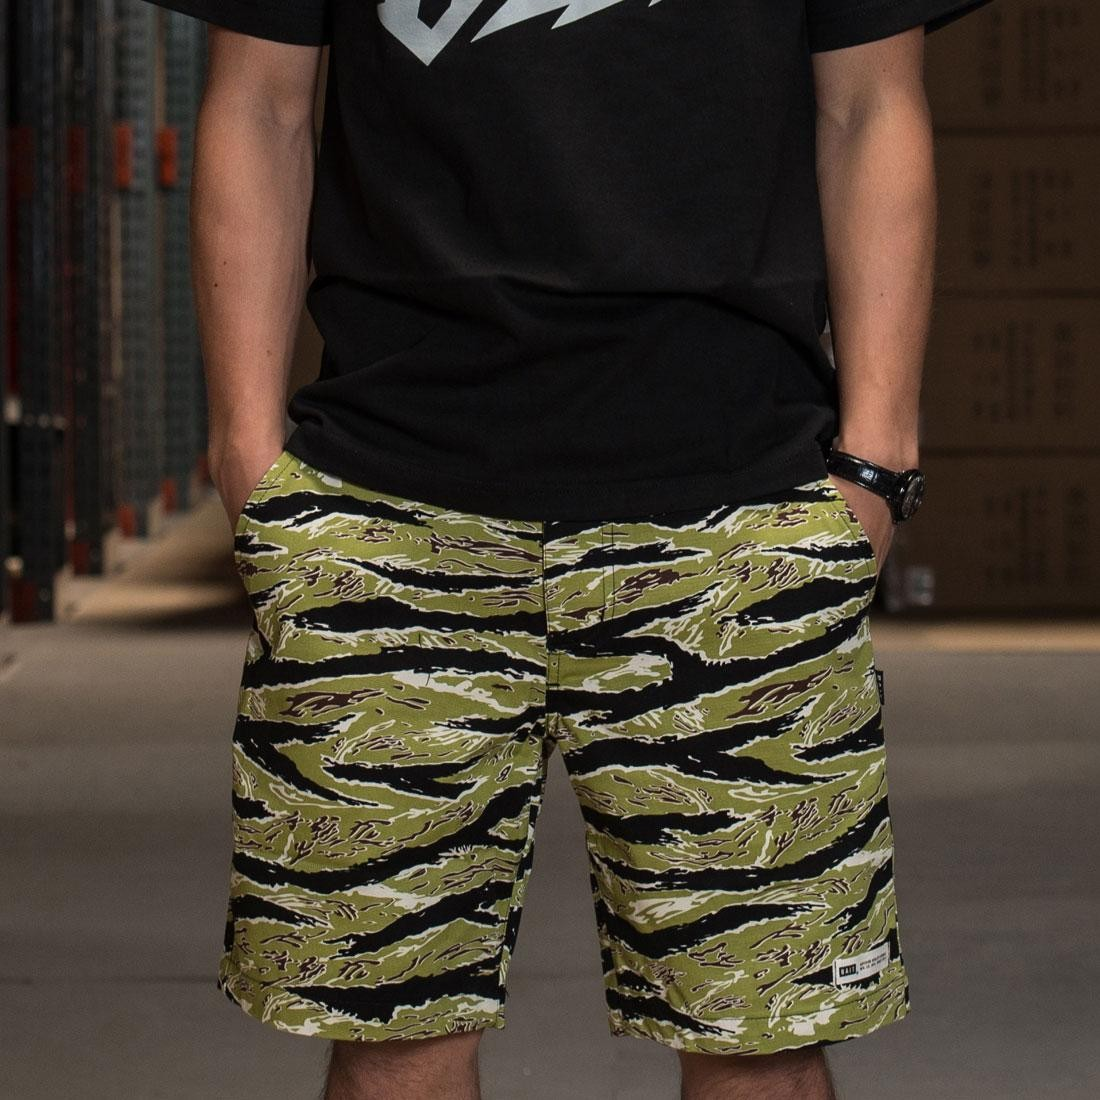 BAIT Basics Chino Shorts (camo / tiger camo)